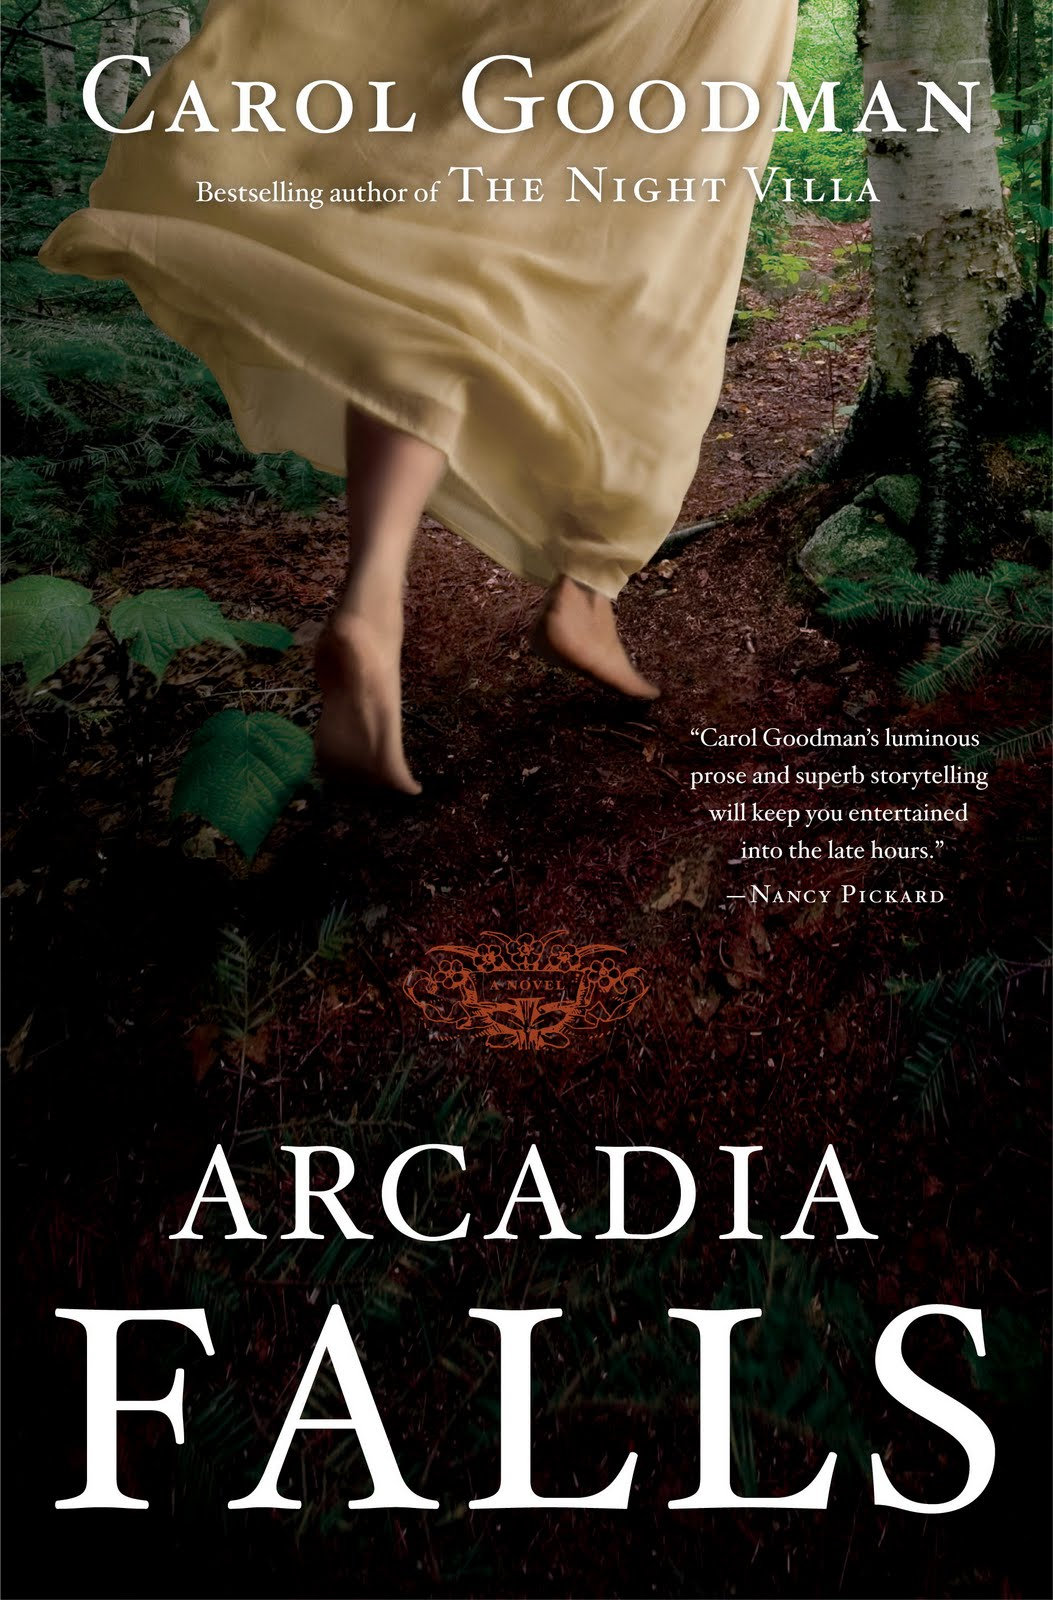 I Was Pleasantly Surprised To Find That Carol Goodman's Latest Book,  Arcadia Falls, Is An Excellent Pageturner It Opens By Introducing Us To  Meg Rosenthal